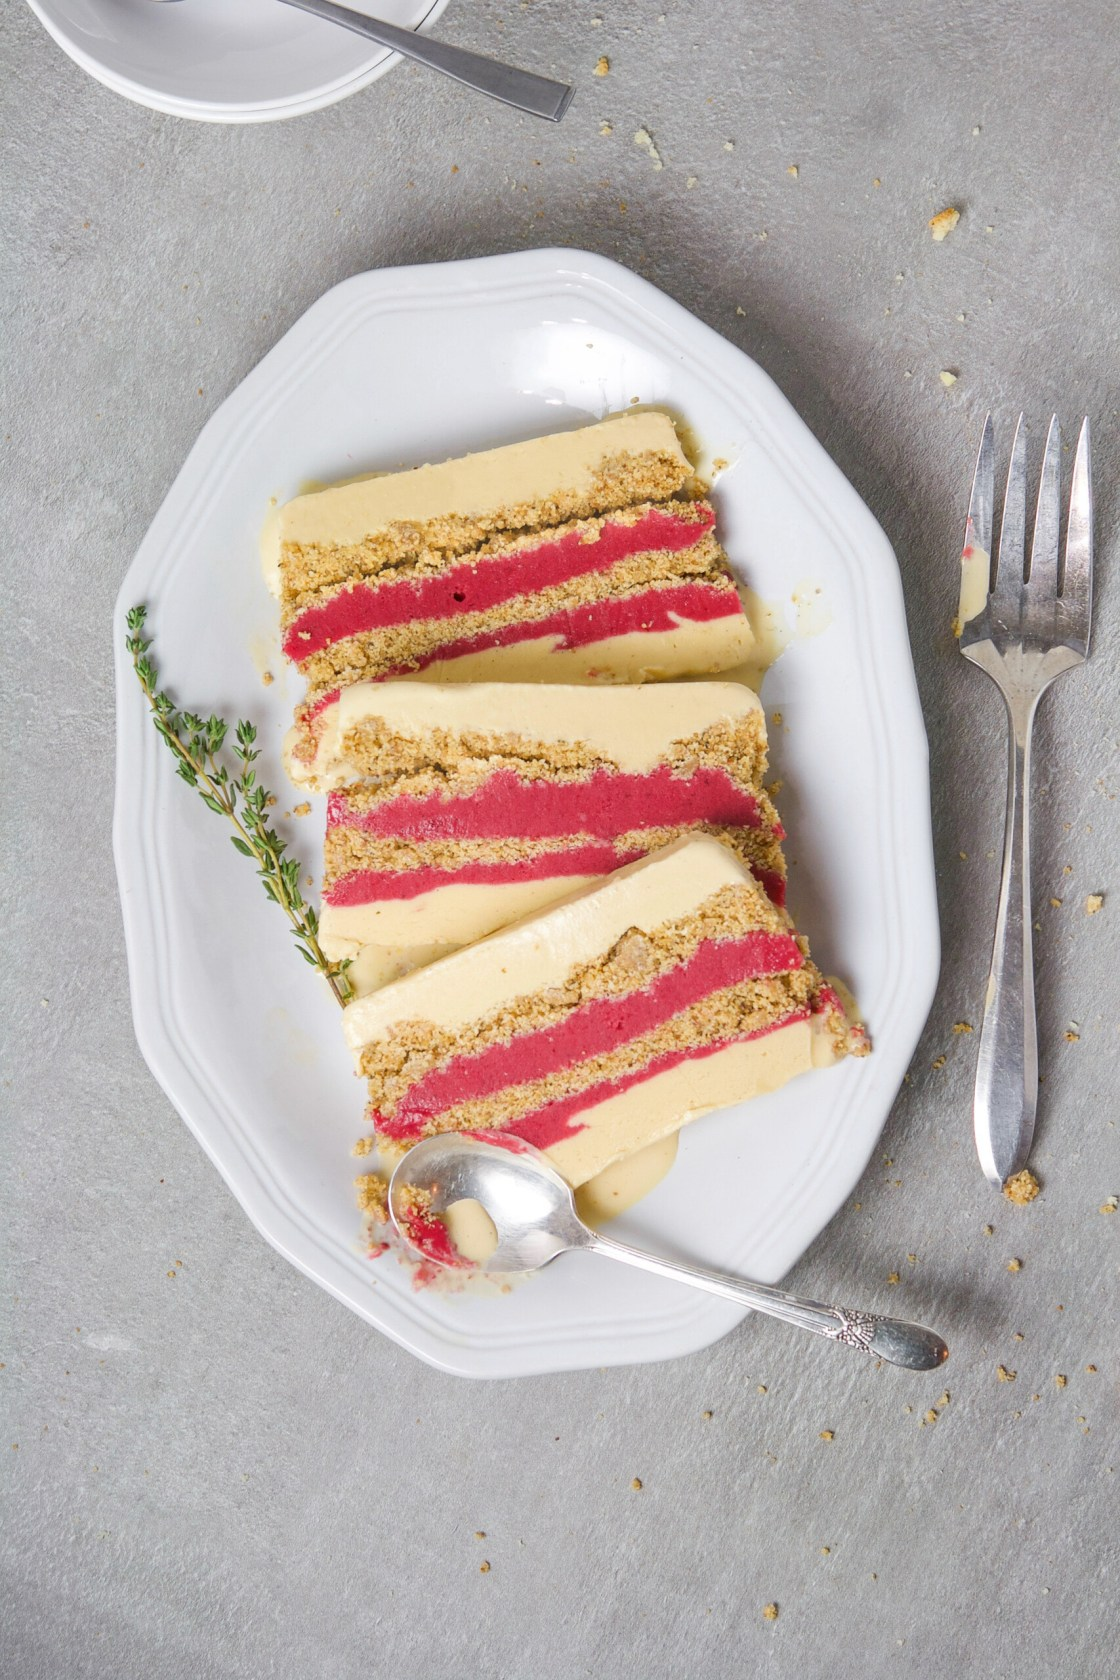 A wonderfully festive, and easy-to-make dessert, this layered ice cream cake featuring creamy goat milk ice cream, naturally sweetened cranberry curd, and a nutty biscotti layer, is most definitely one for the books. | from Lauren Grant of Zestful Kitchen